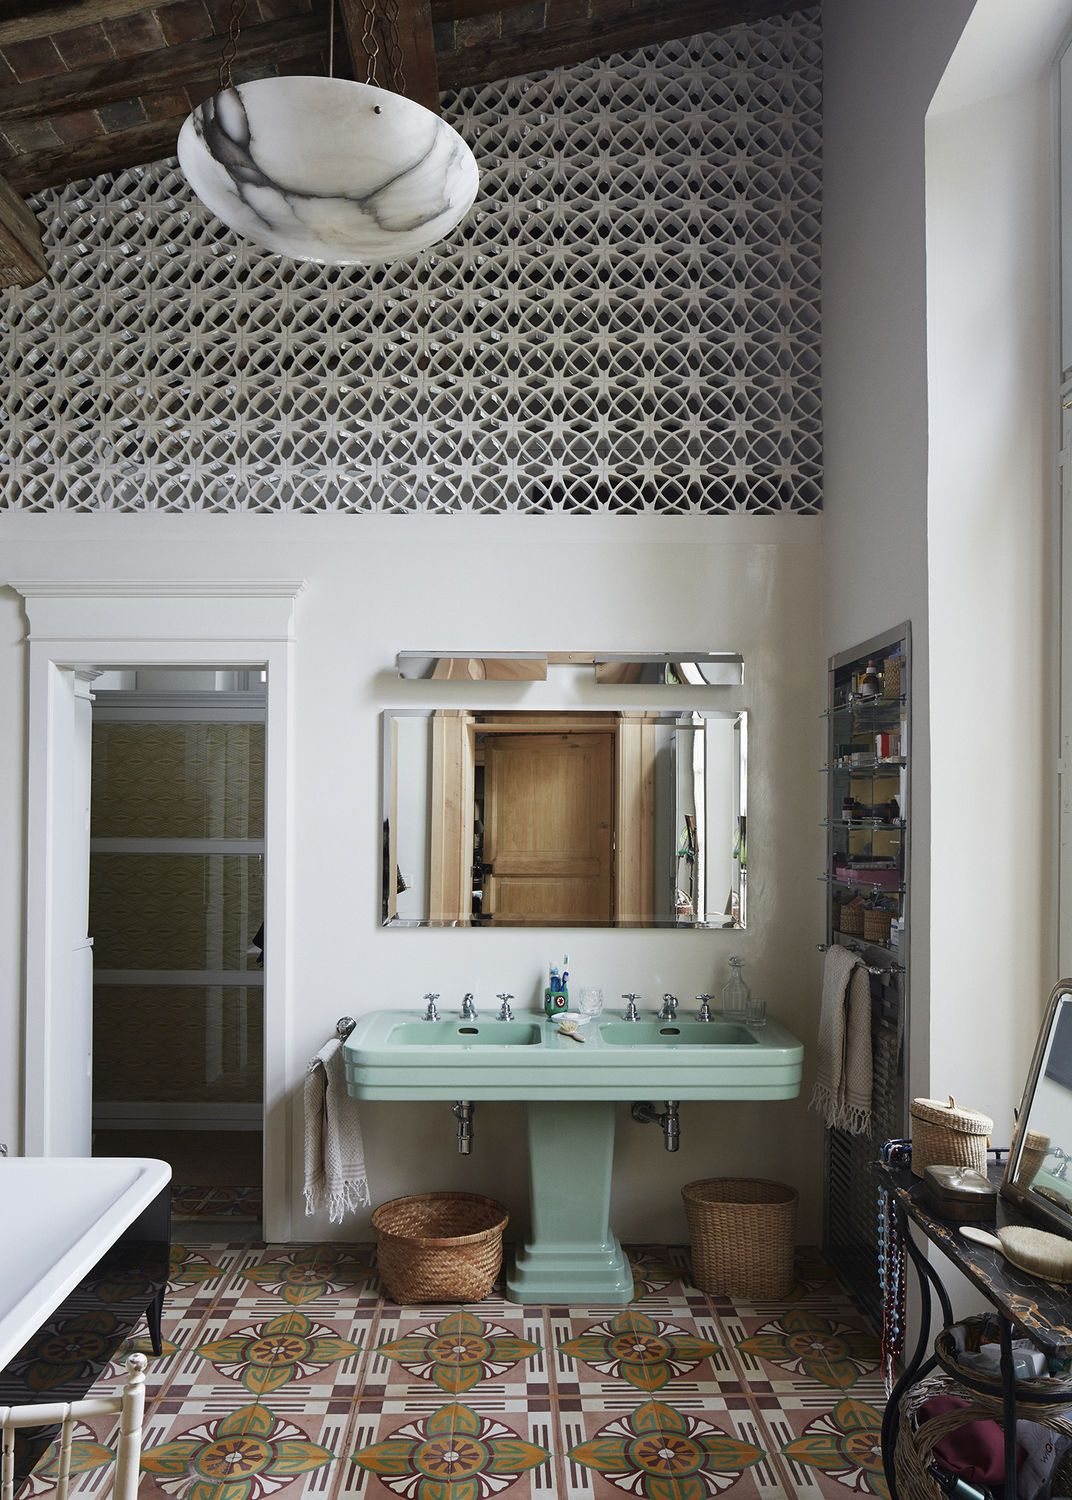 Already Pinned It But I Love This Bathroom So Much Simon Watson